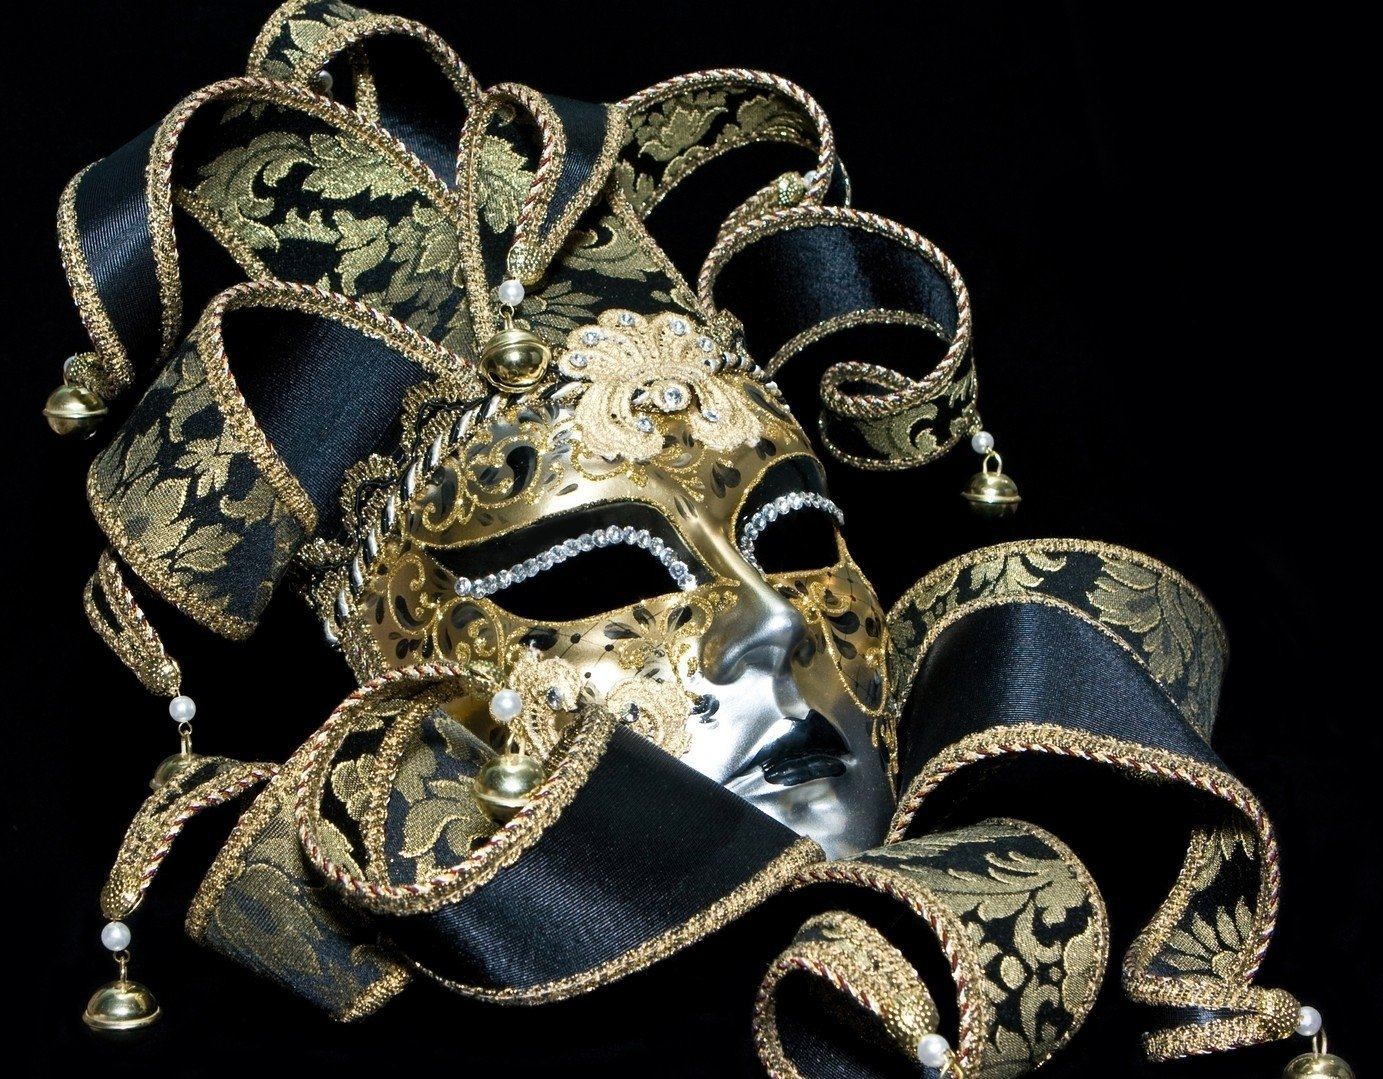 Mask Masquerade Google image from http://www.wallpapersshop.net/wp-content/uploads/2012/12/Mask-Masquerade.jpg